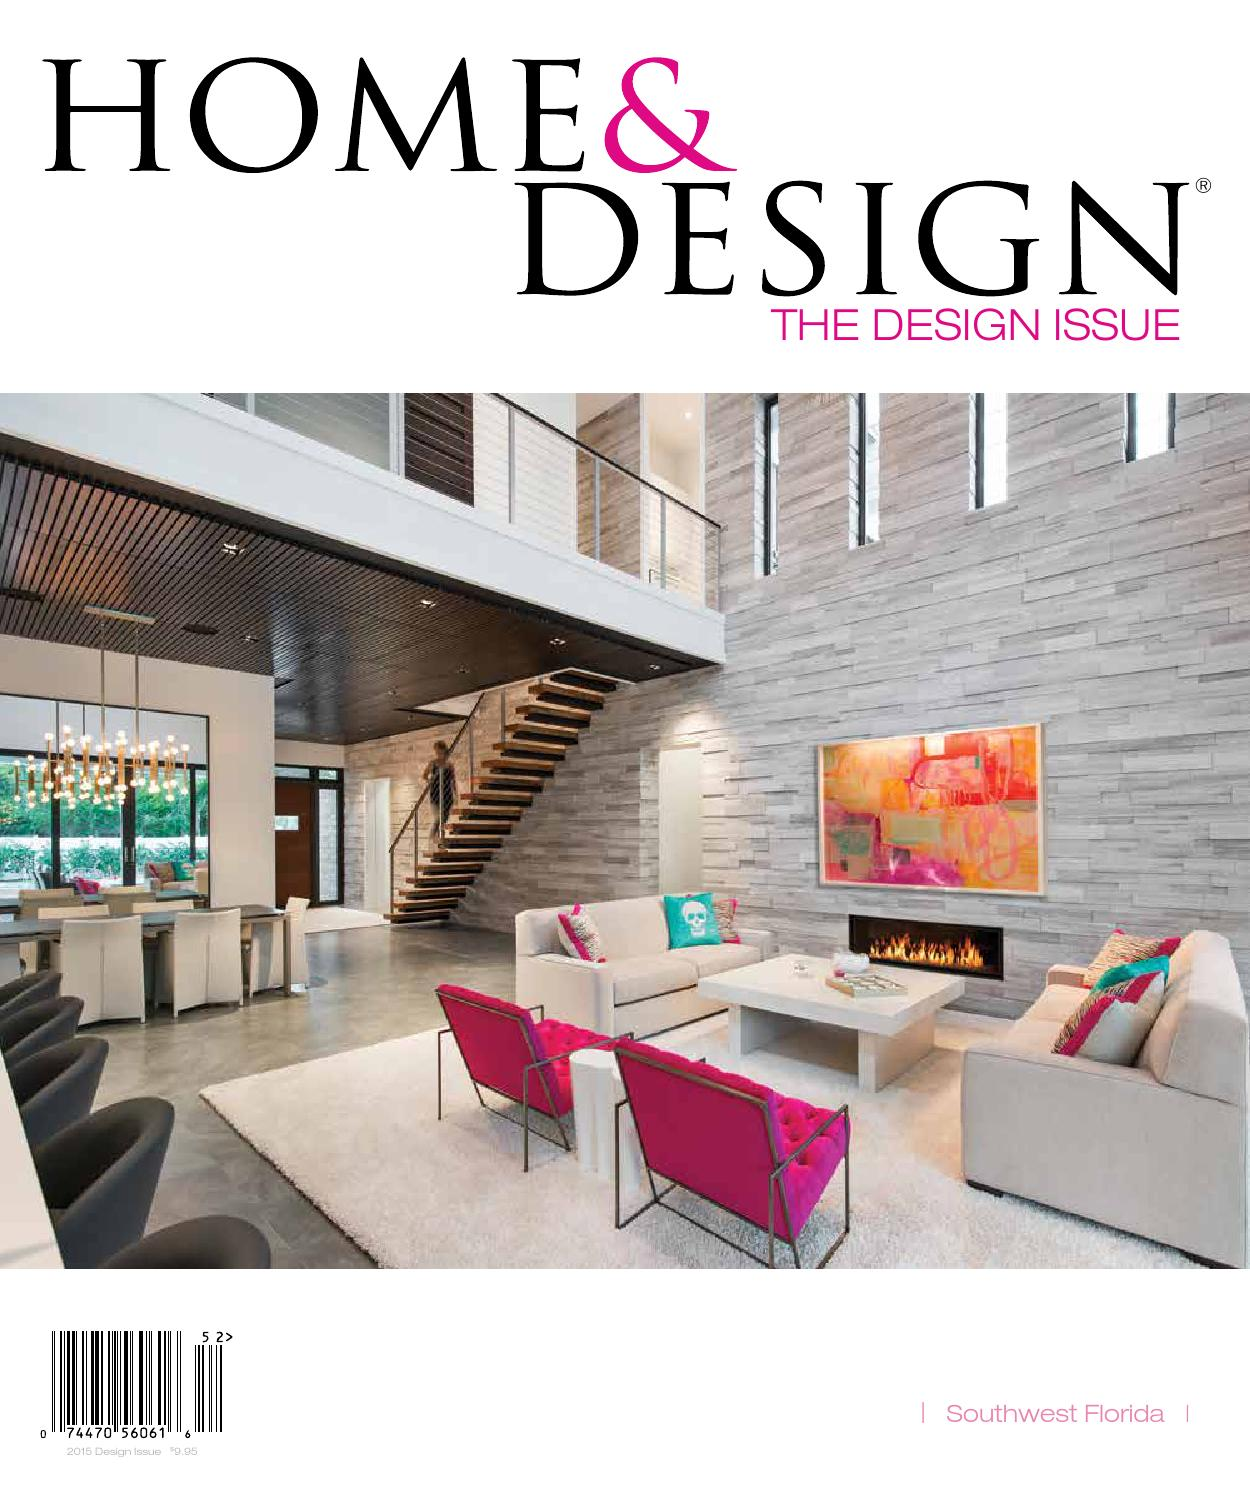 Home Design Magazine home & design magazine | design issue 2015 | southwest florida